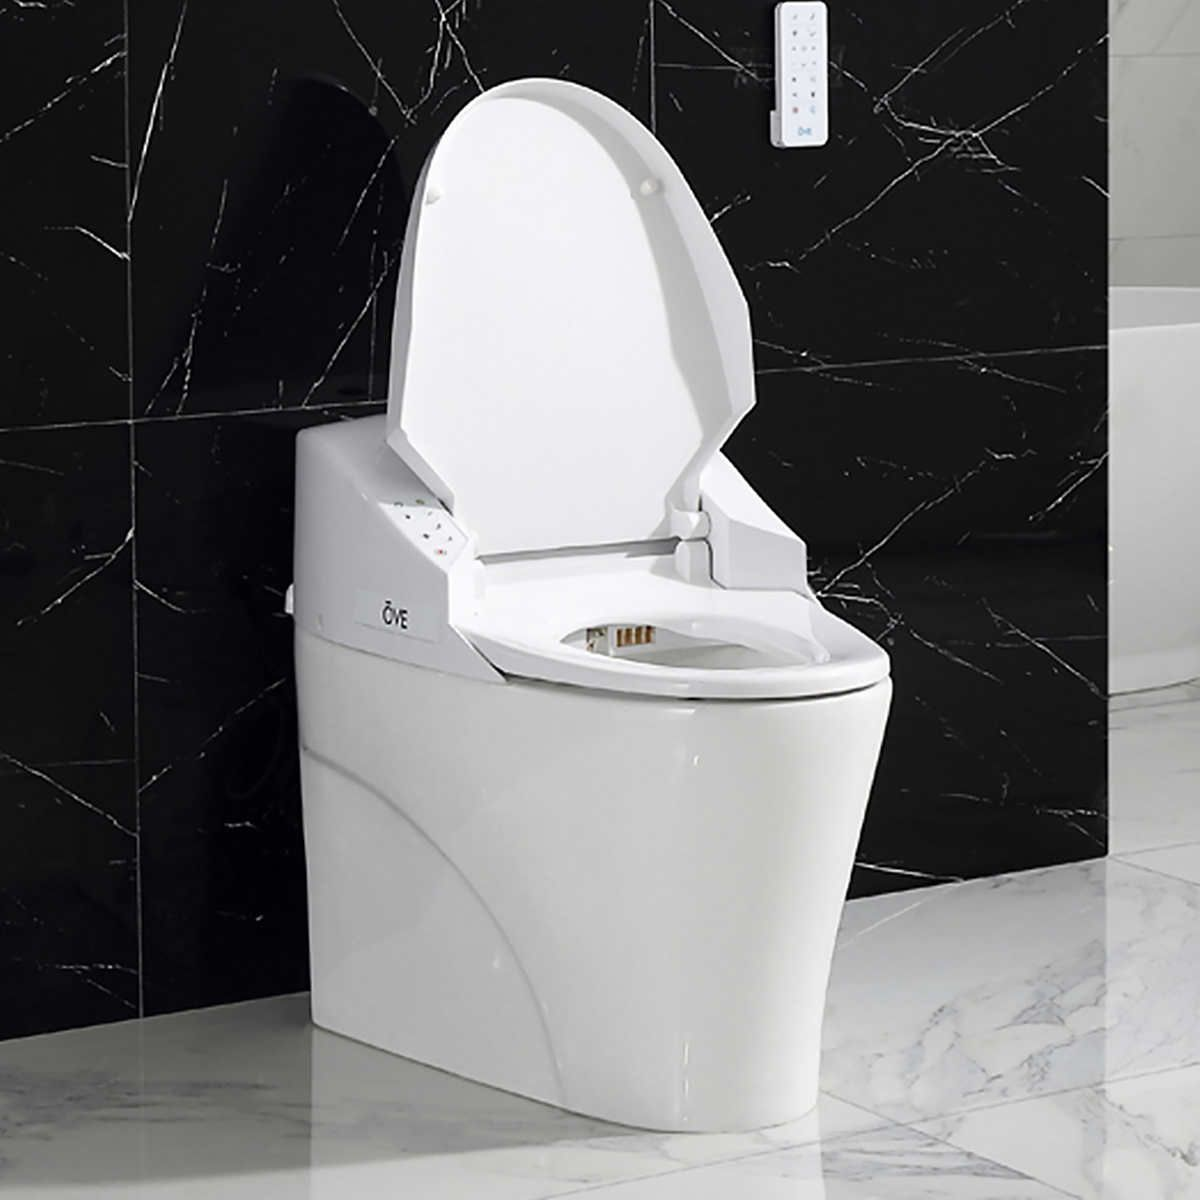 Master Bath Powder Room Saga Smart Toilet By Ove Decors Costco 999 With Images Smart Toilet Toilet Bidet Toilet